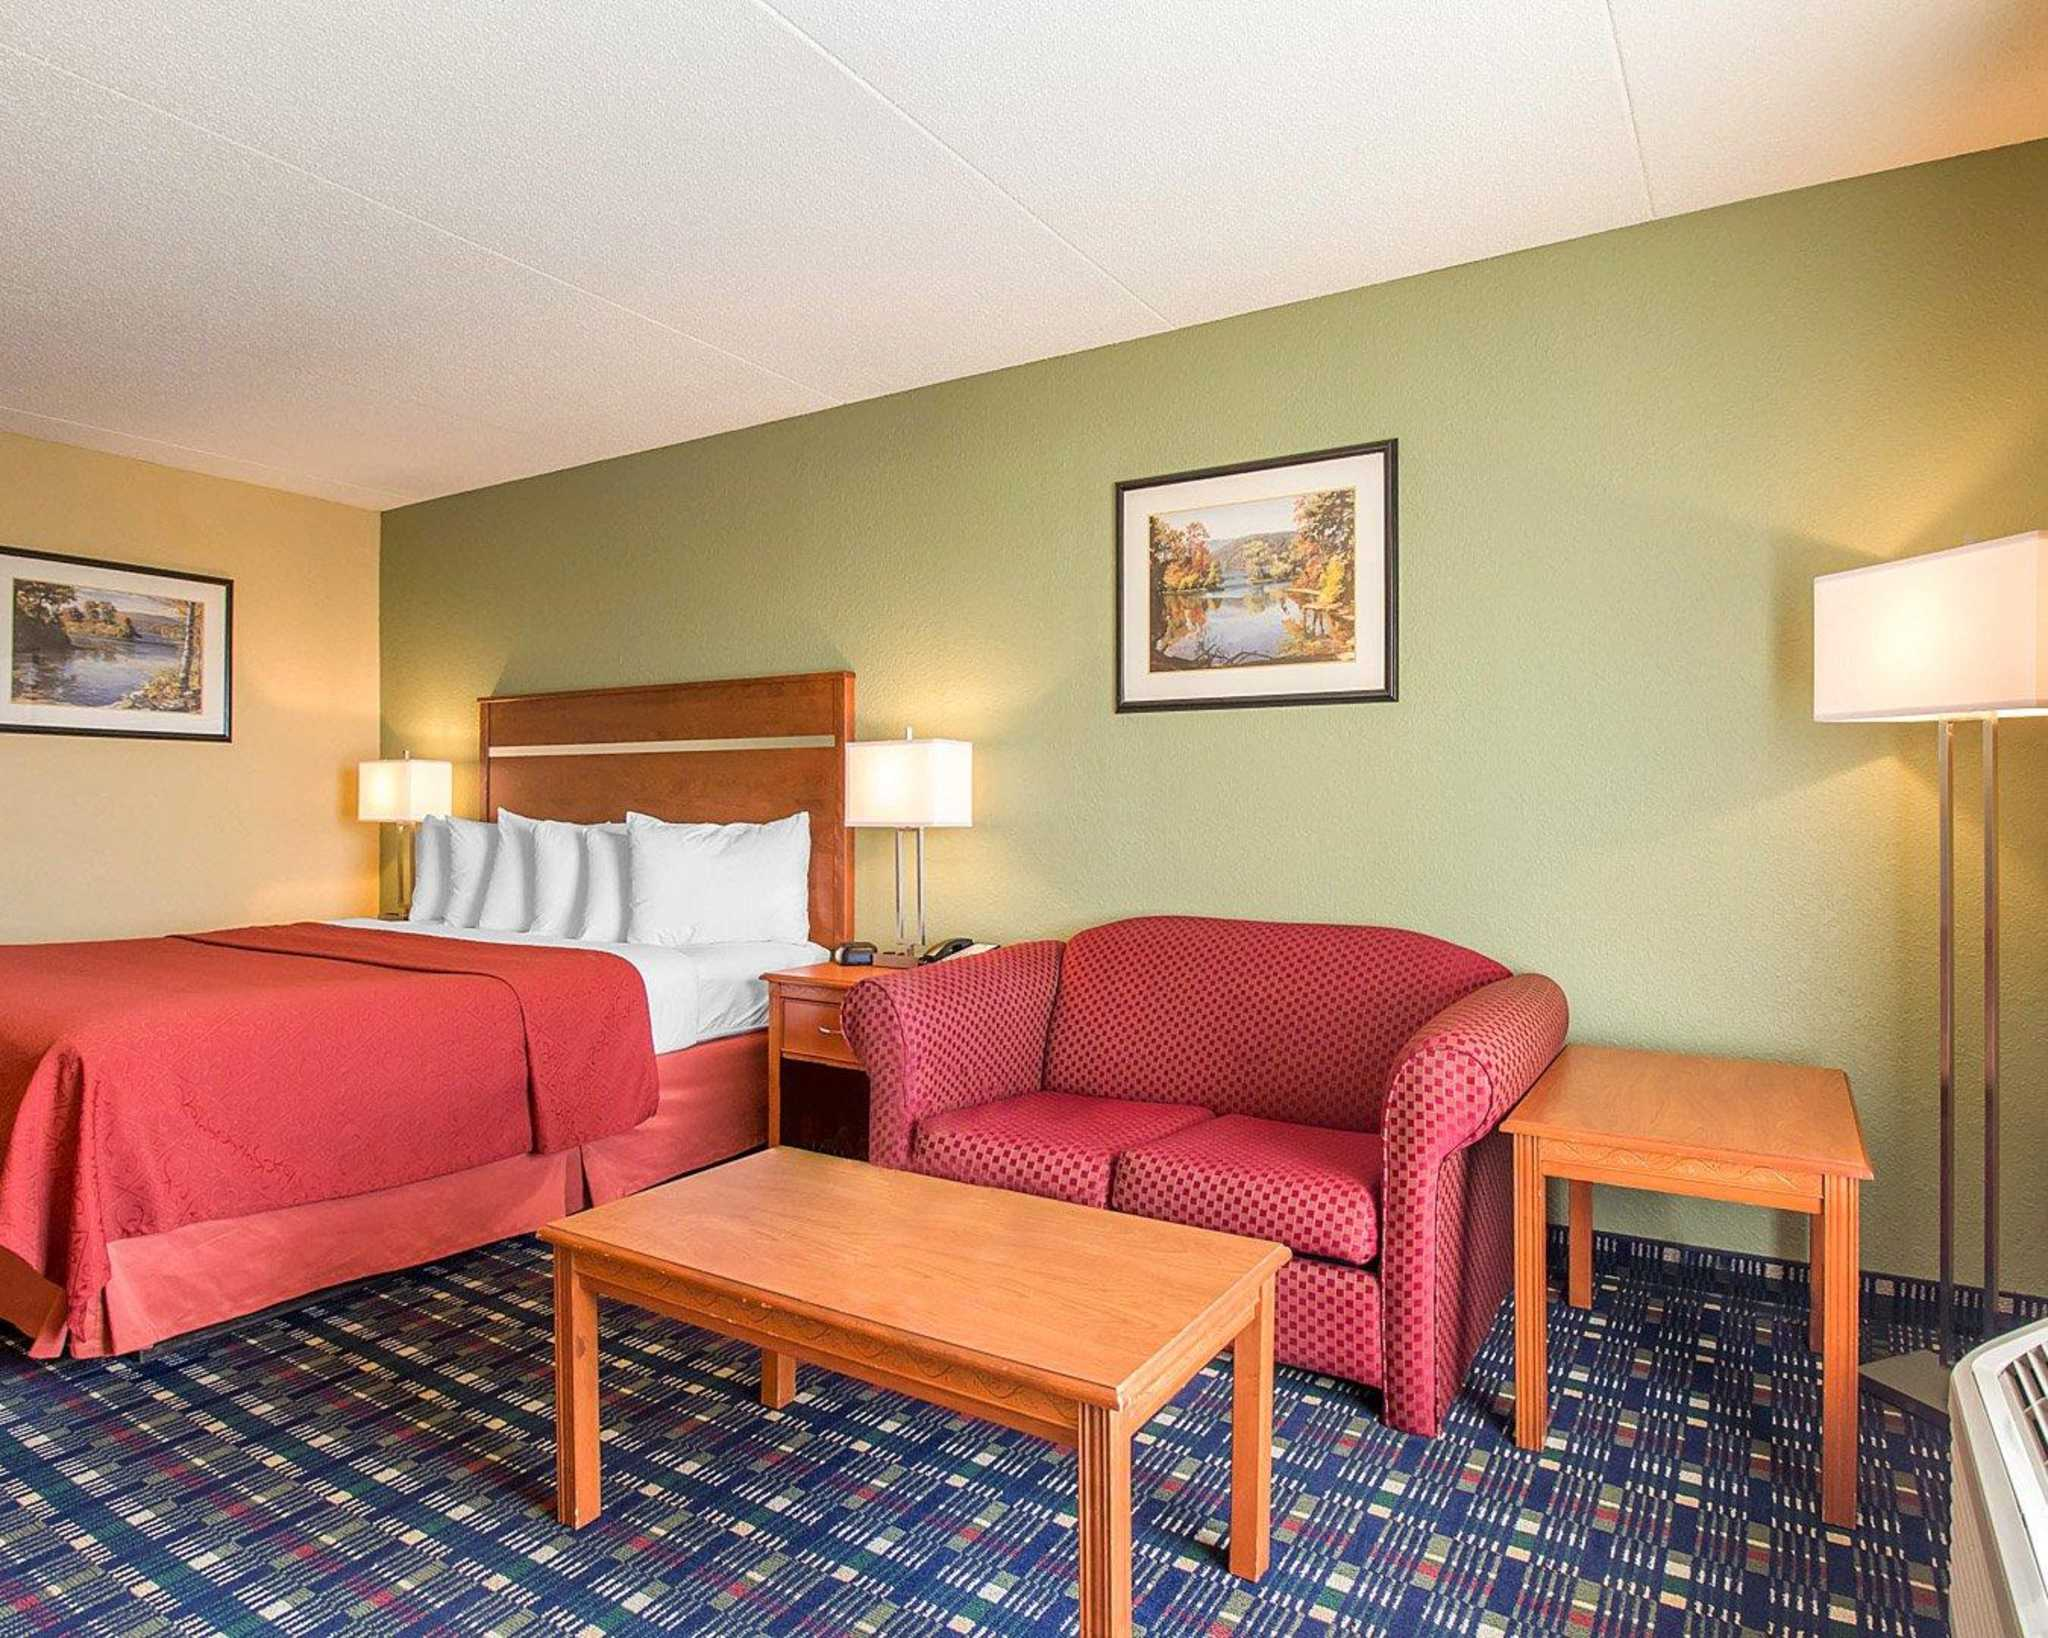 Quality Inn image 3